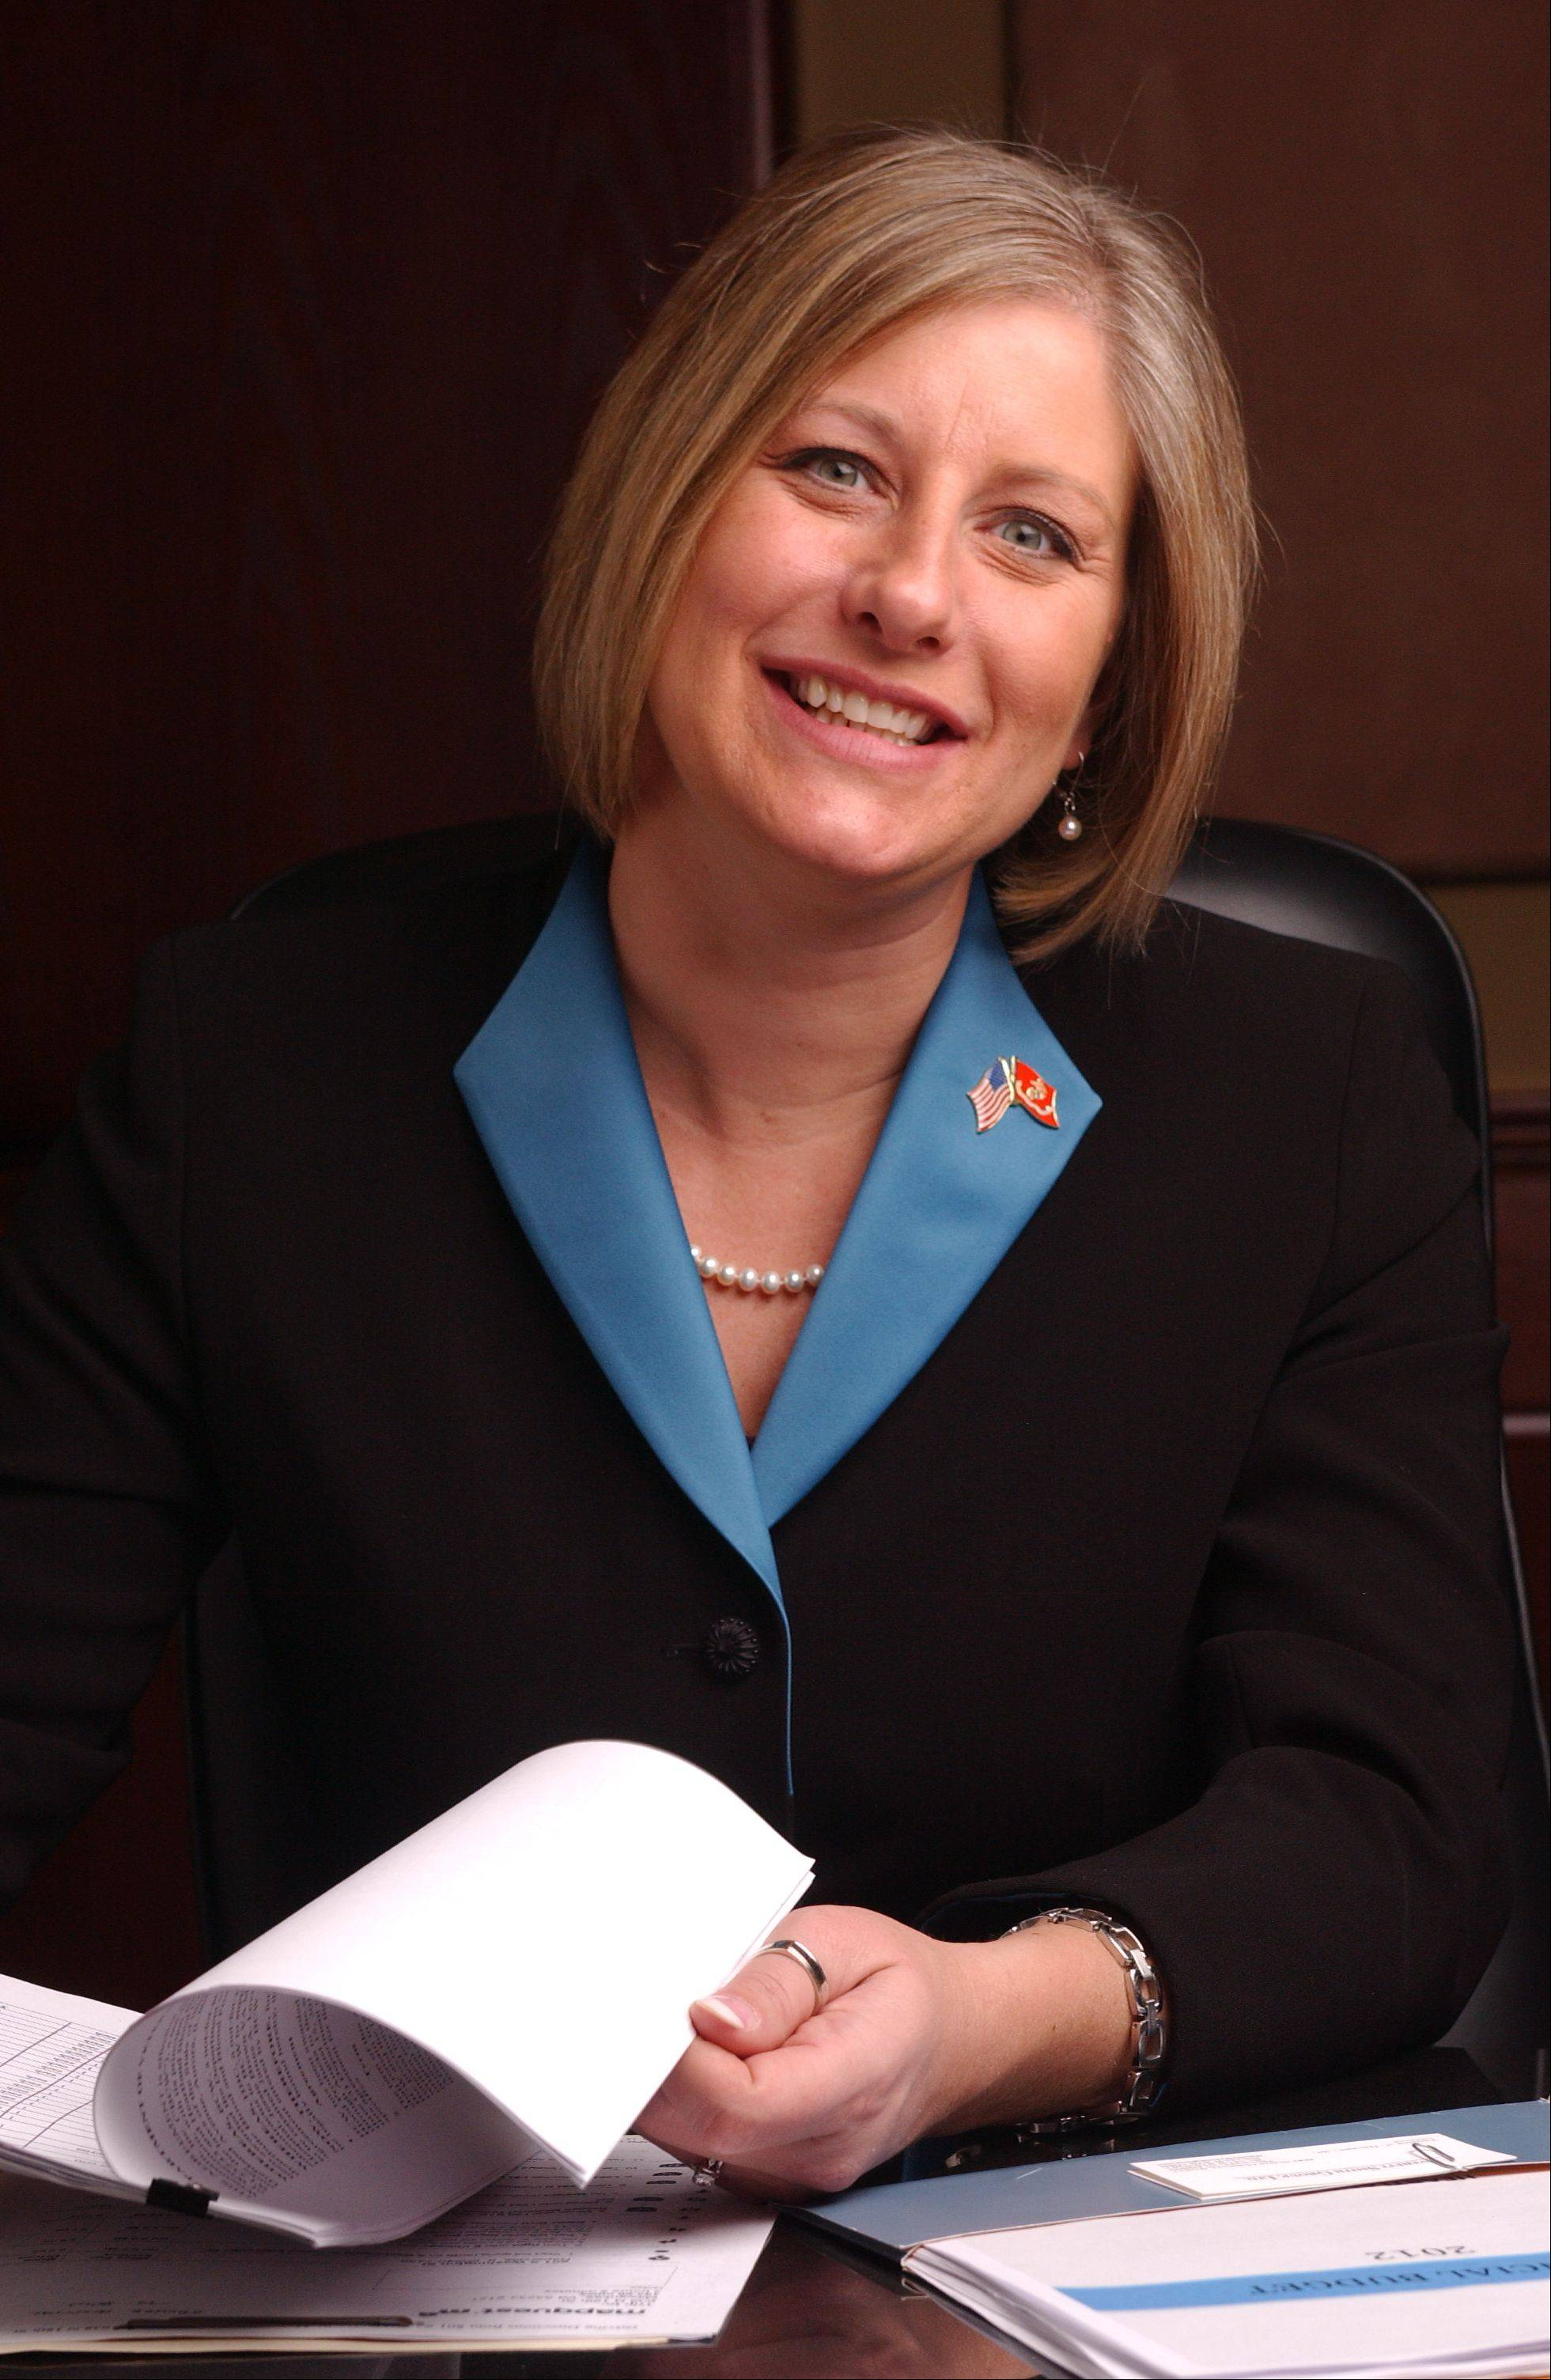 84th House hopefuls won't rule out extending income tax hike